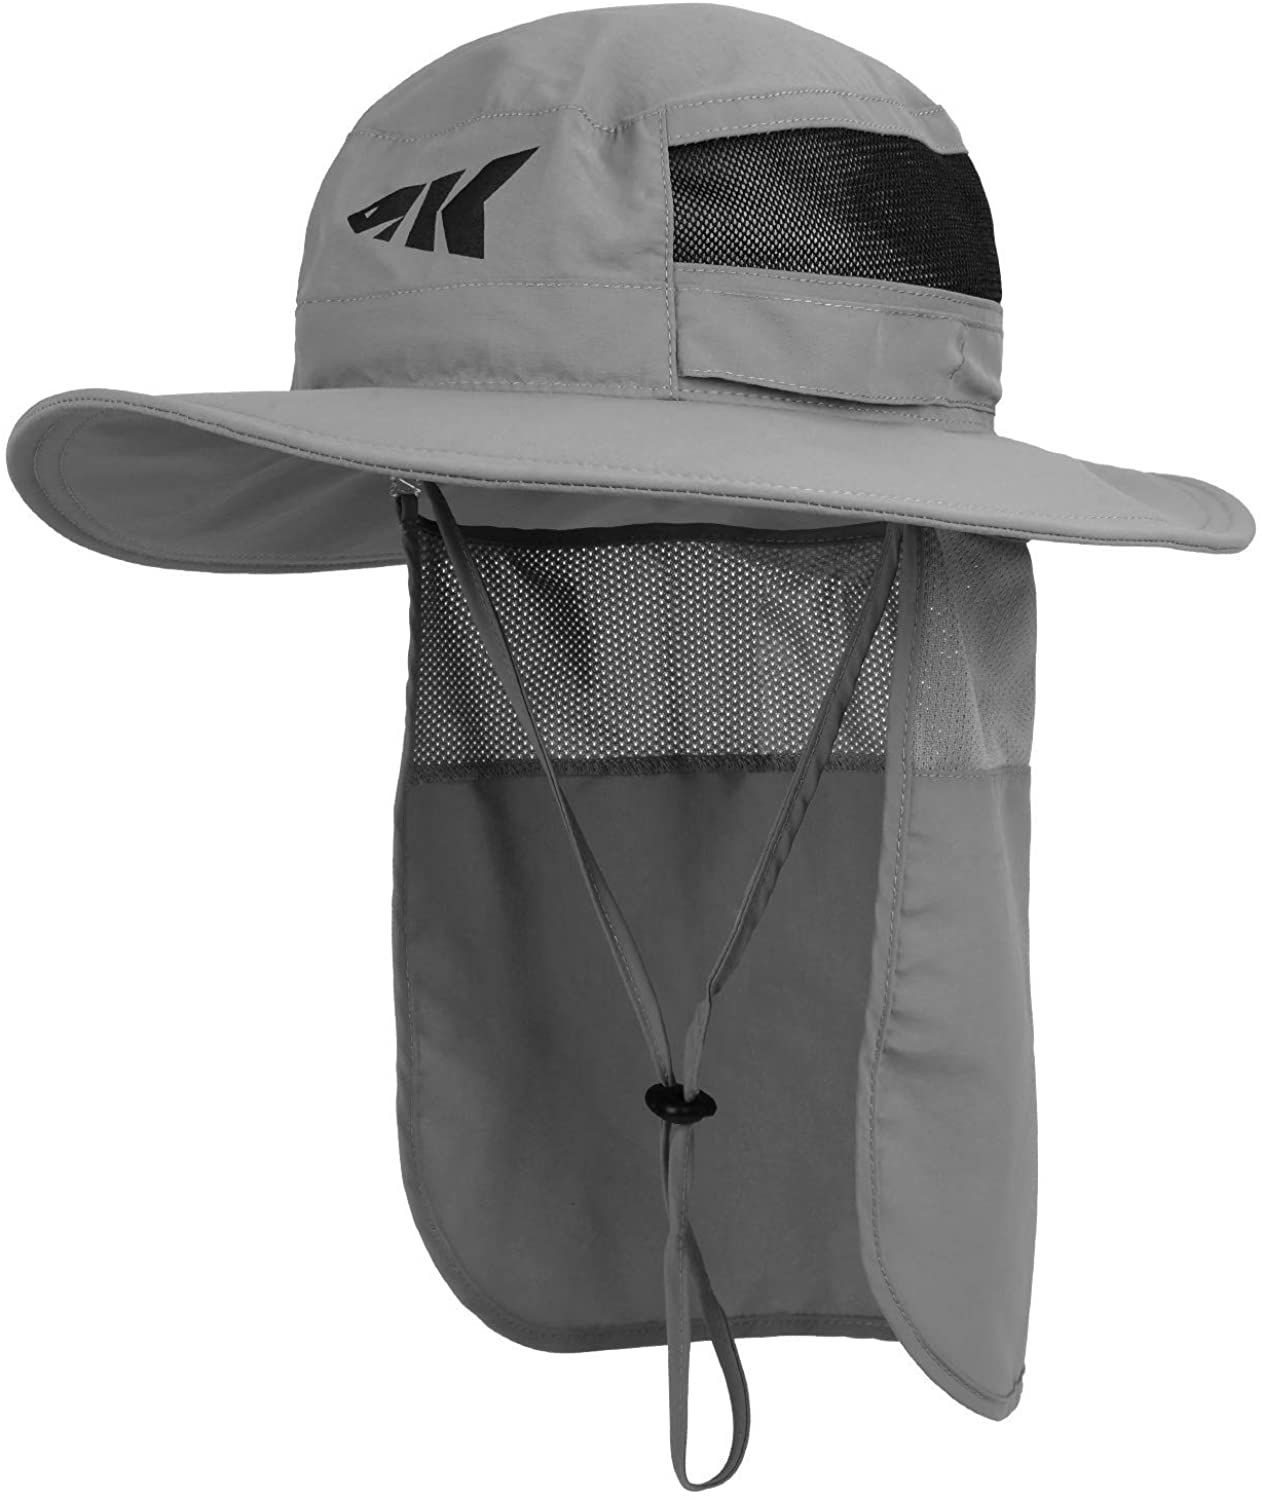 KastKing Sol Armis UPF 50 Boonie Sun Hat with Removable Neck Shield– Sun Protection Hat, Fishing Hat